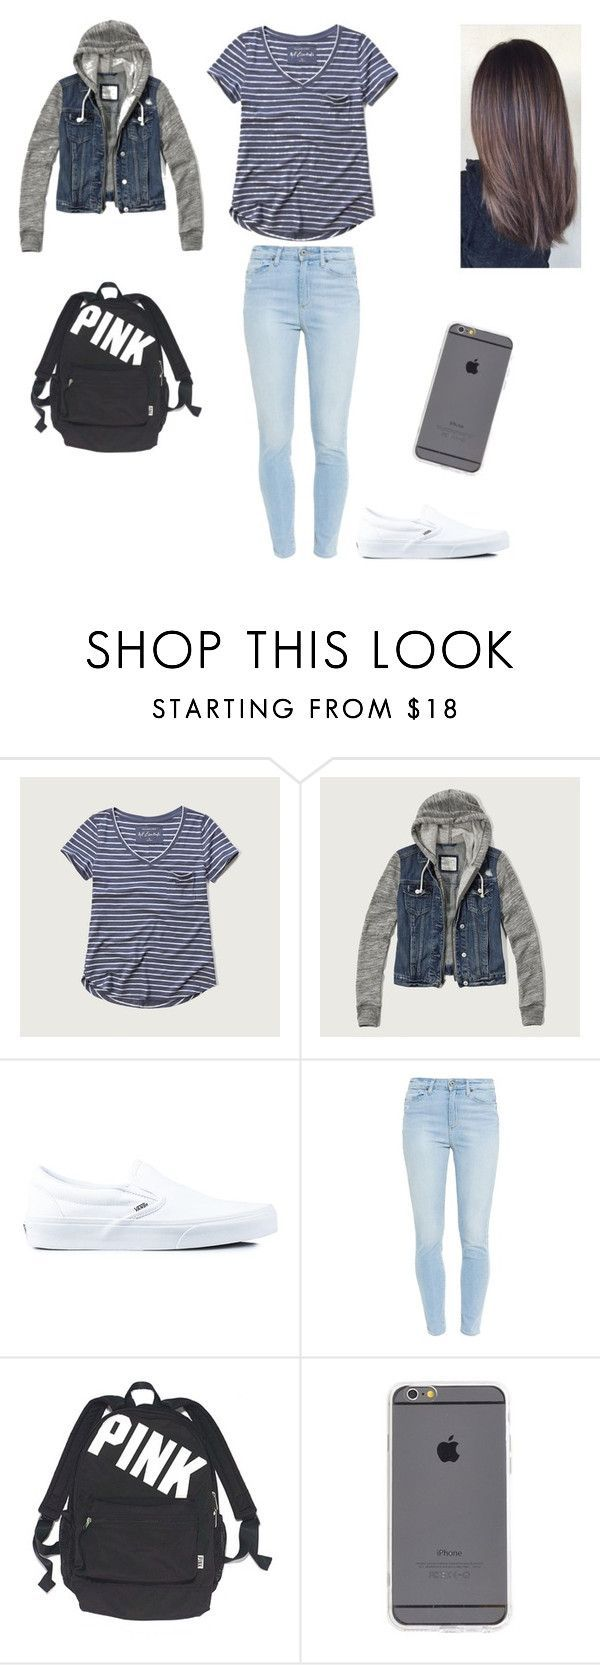 8th grade outfit by kemihereee ❤ liked on Polyvore featuring Abercrombie & Fitch, Vans, Paige Denim and Victoria's Secret